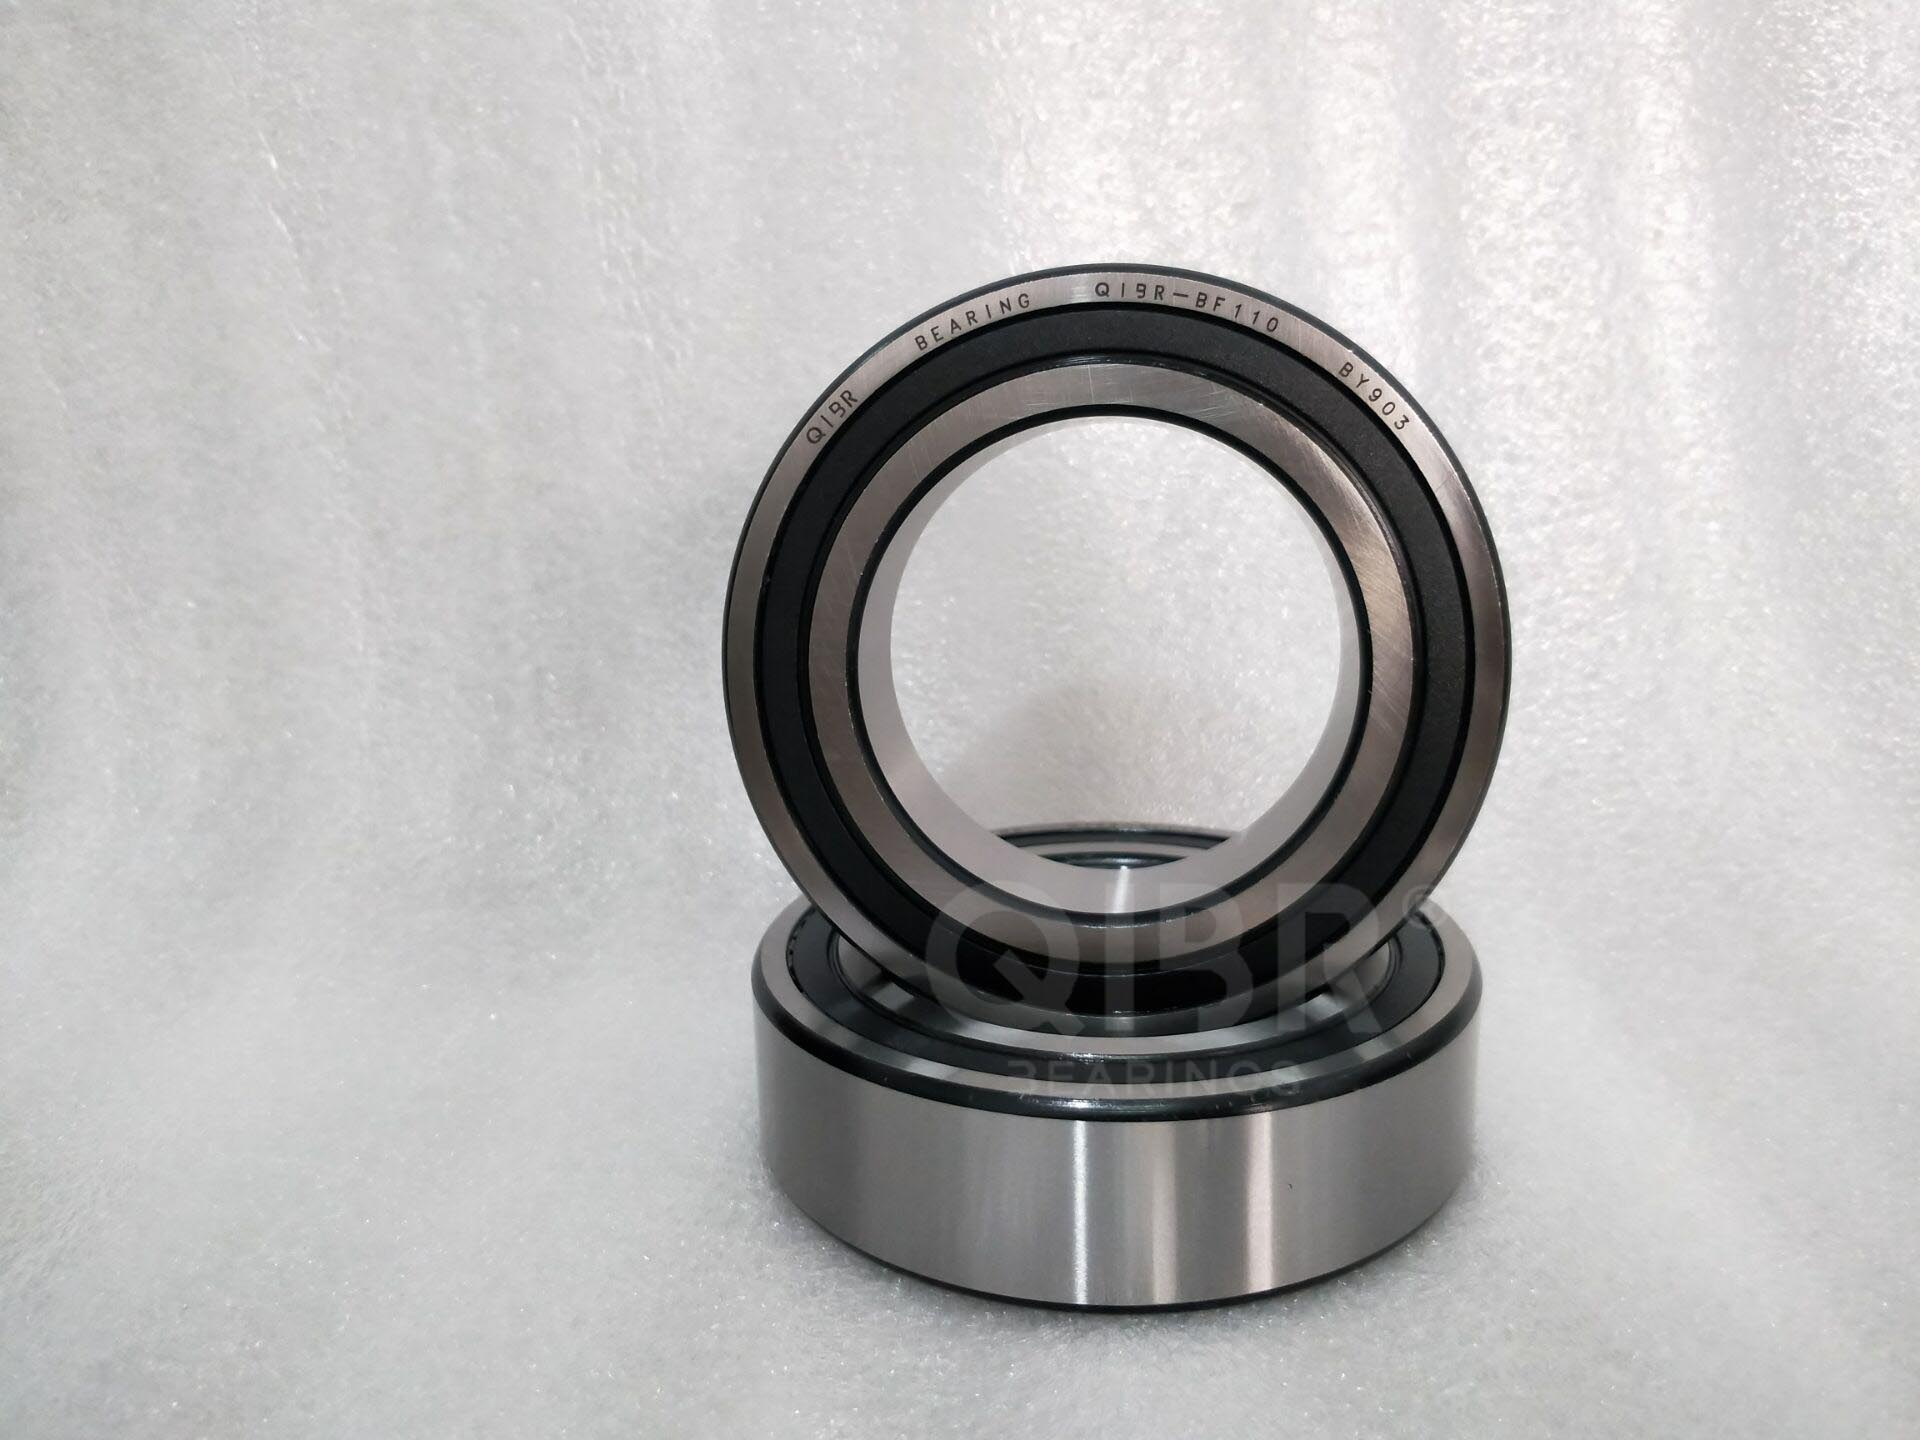 Reliable Quality QIBR Deep Groove Ball Bearing 6310 Bearing with seals